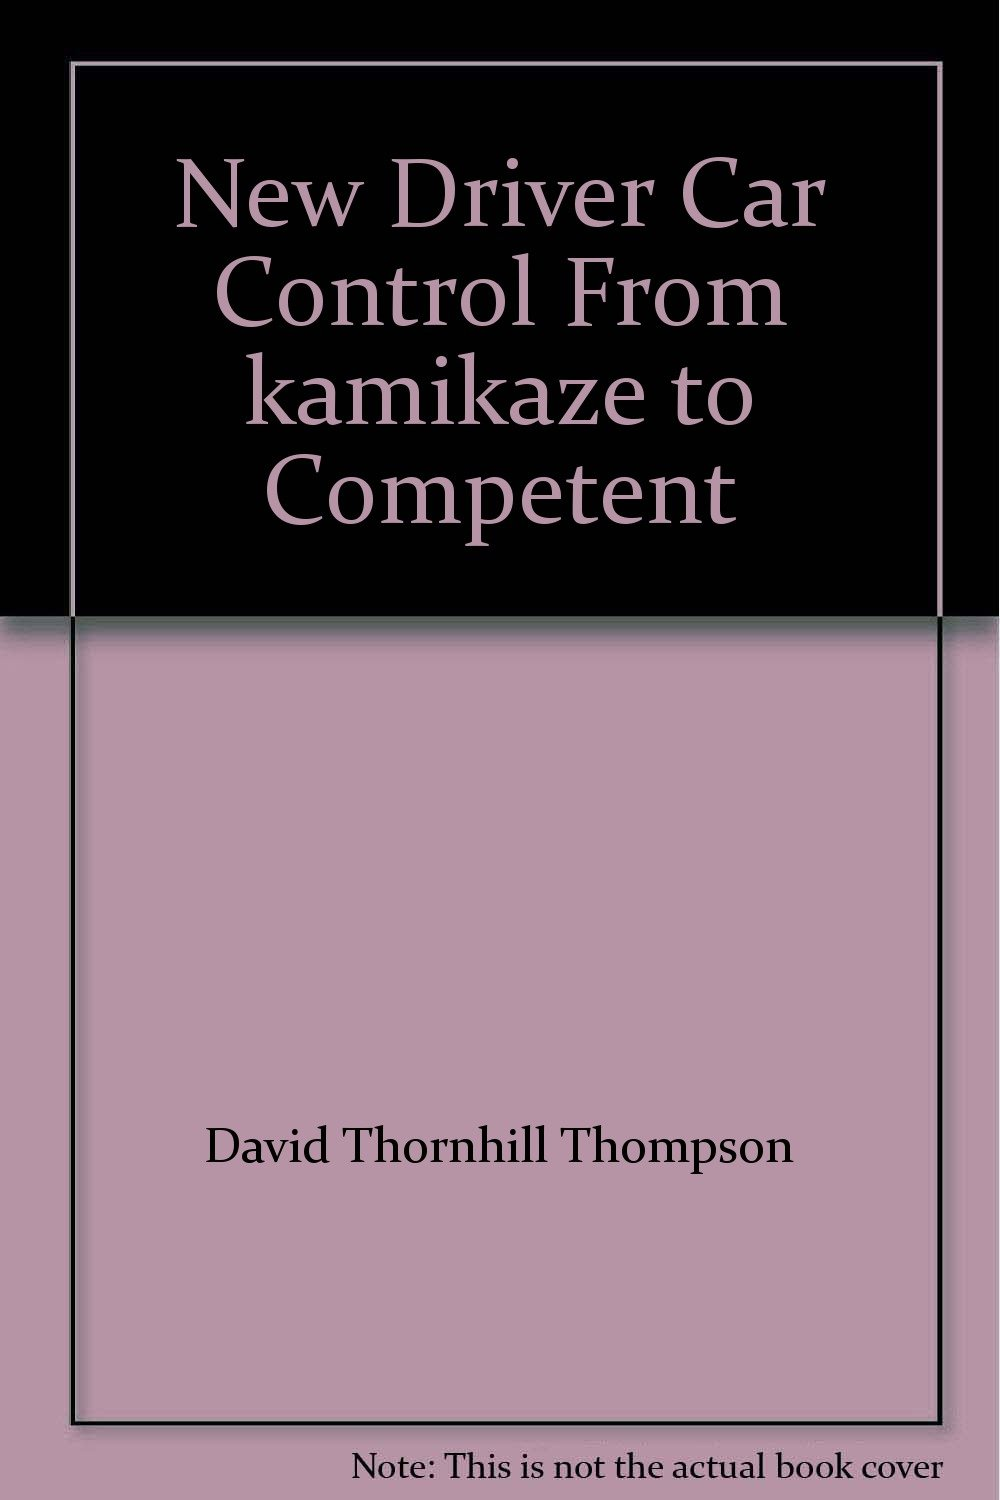 New Driver Car Control From kamikaze to Competent pdf